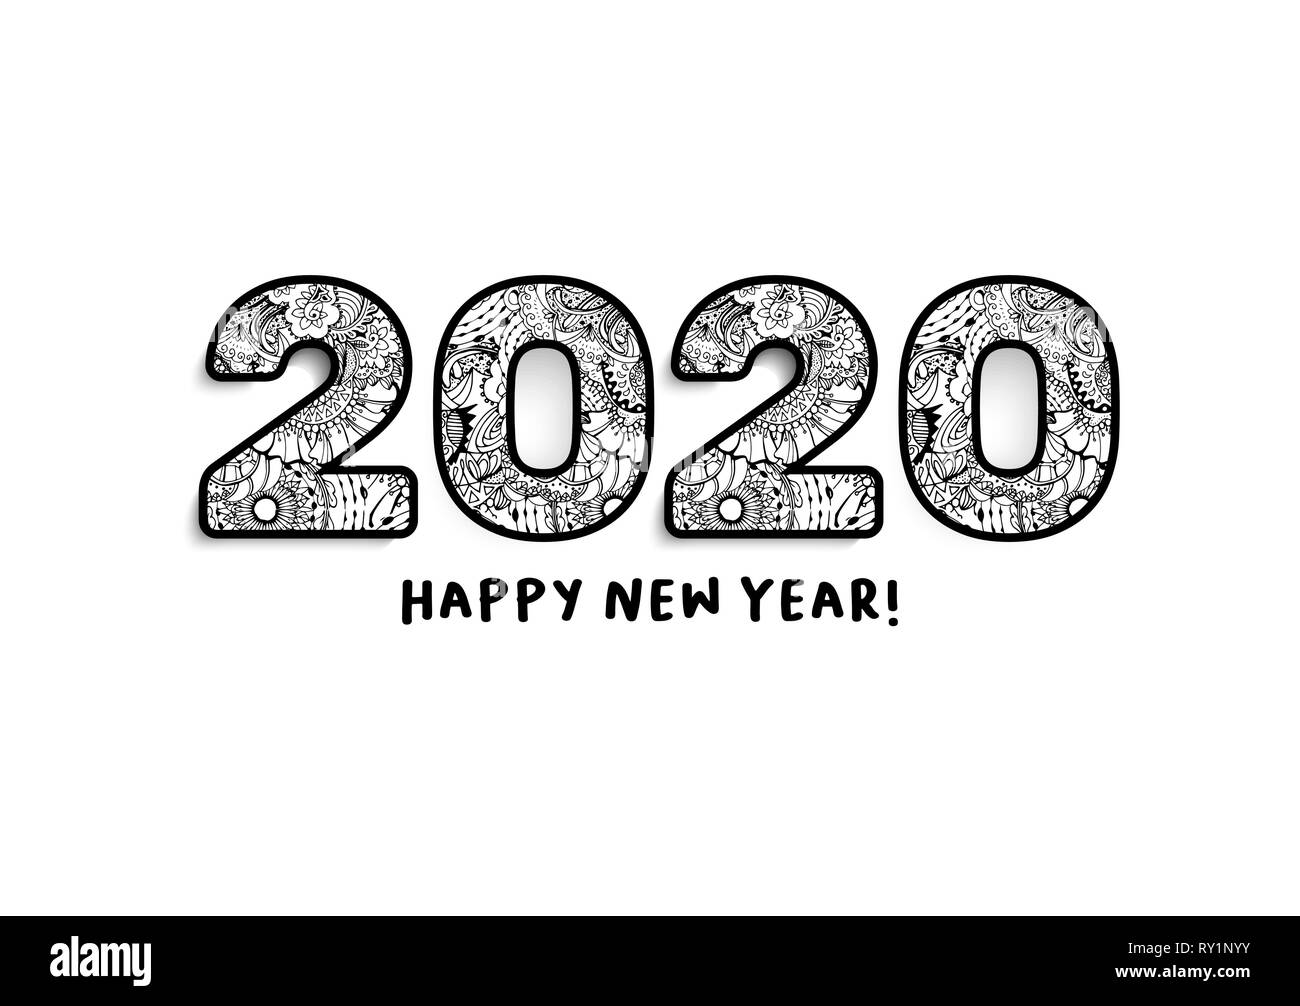 Xmas Calendar 2020 2020 Lettering, Happy New Year Greeting. Calendar Front Cover